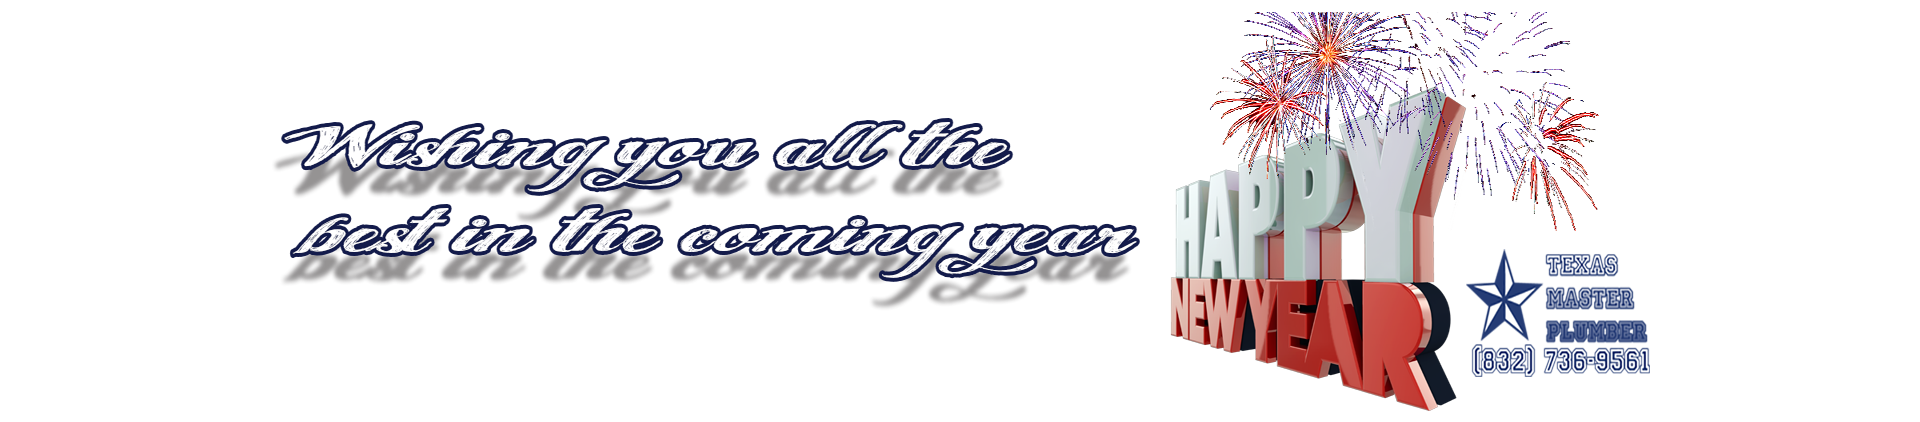 Happy New Year From Texas Master Plumber